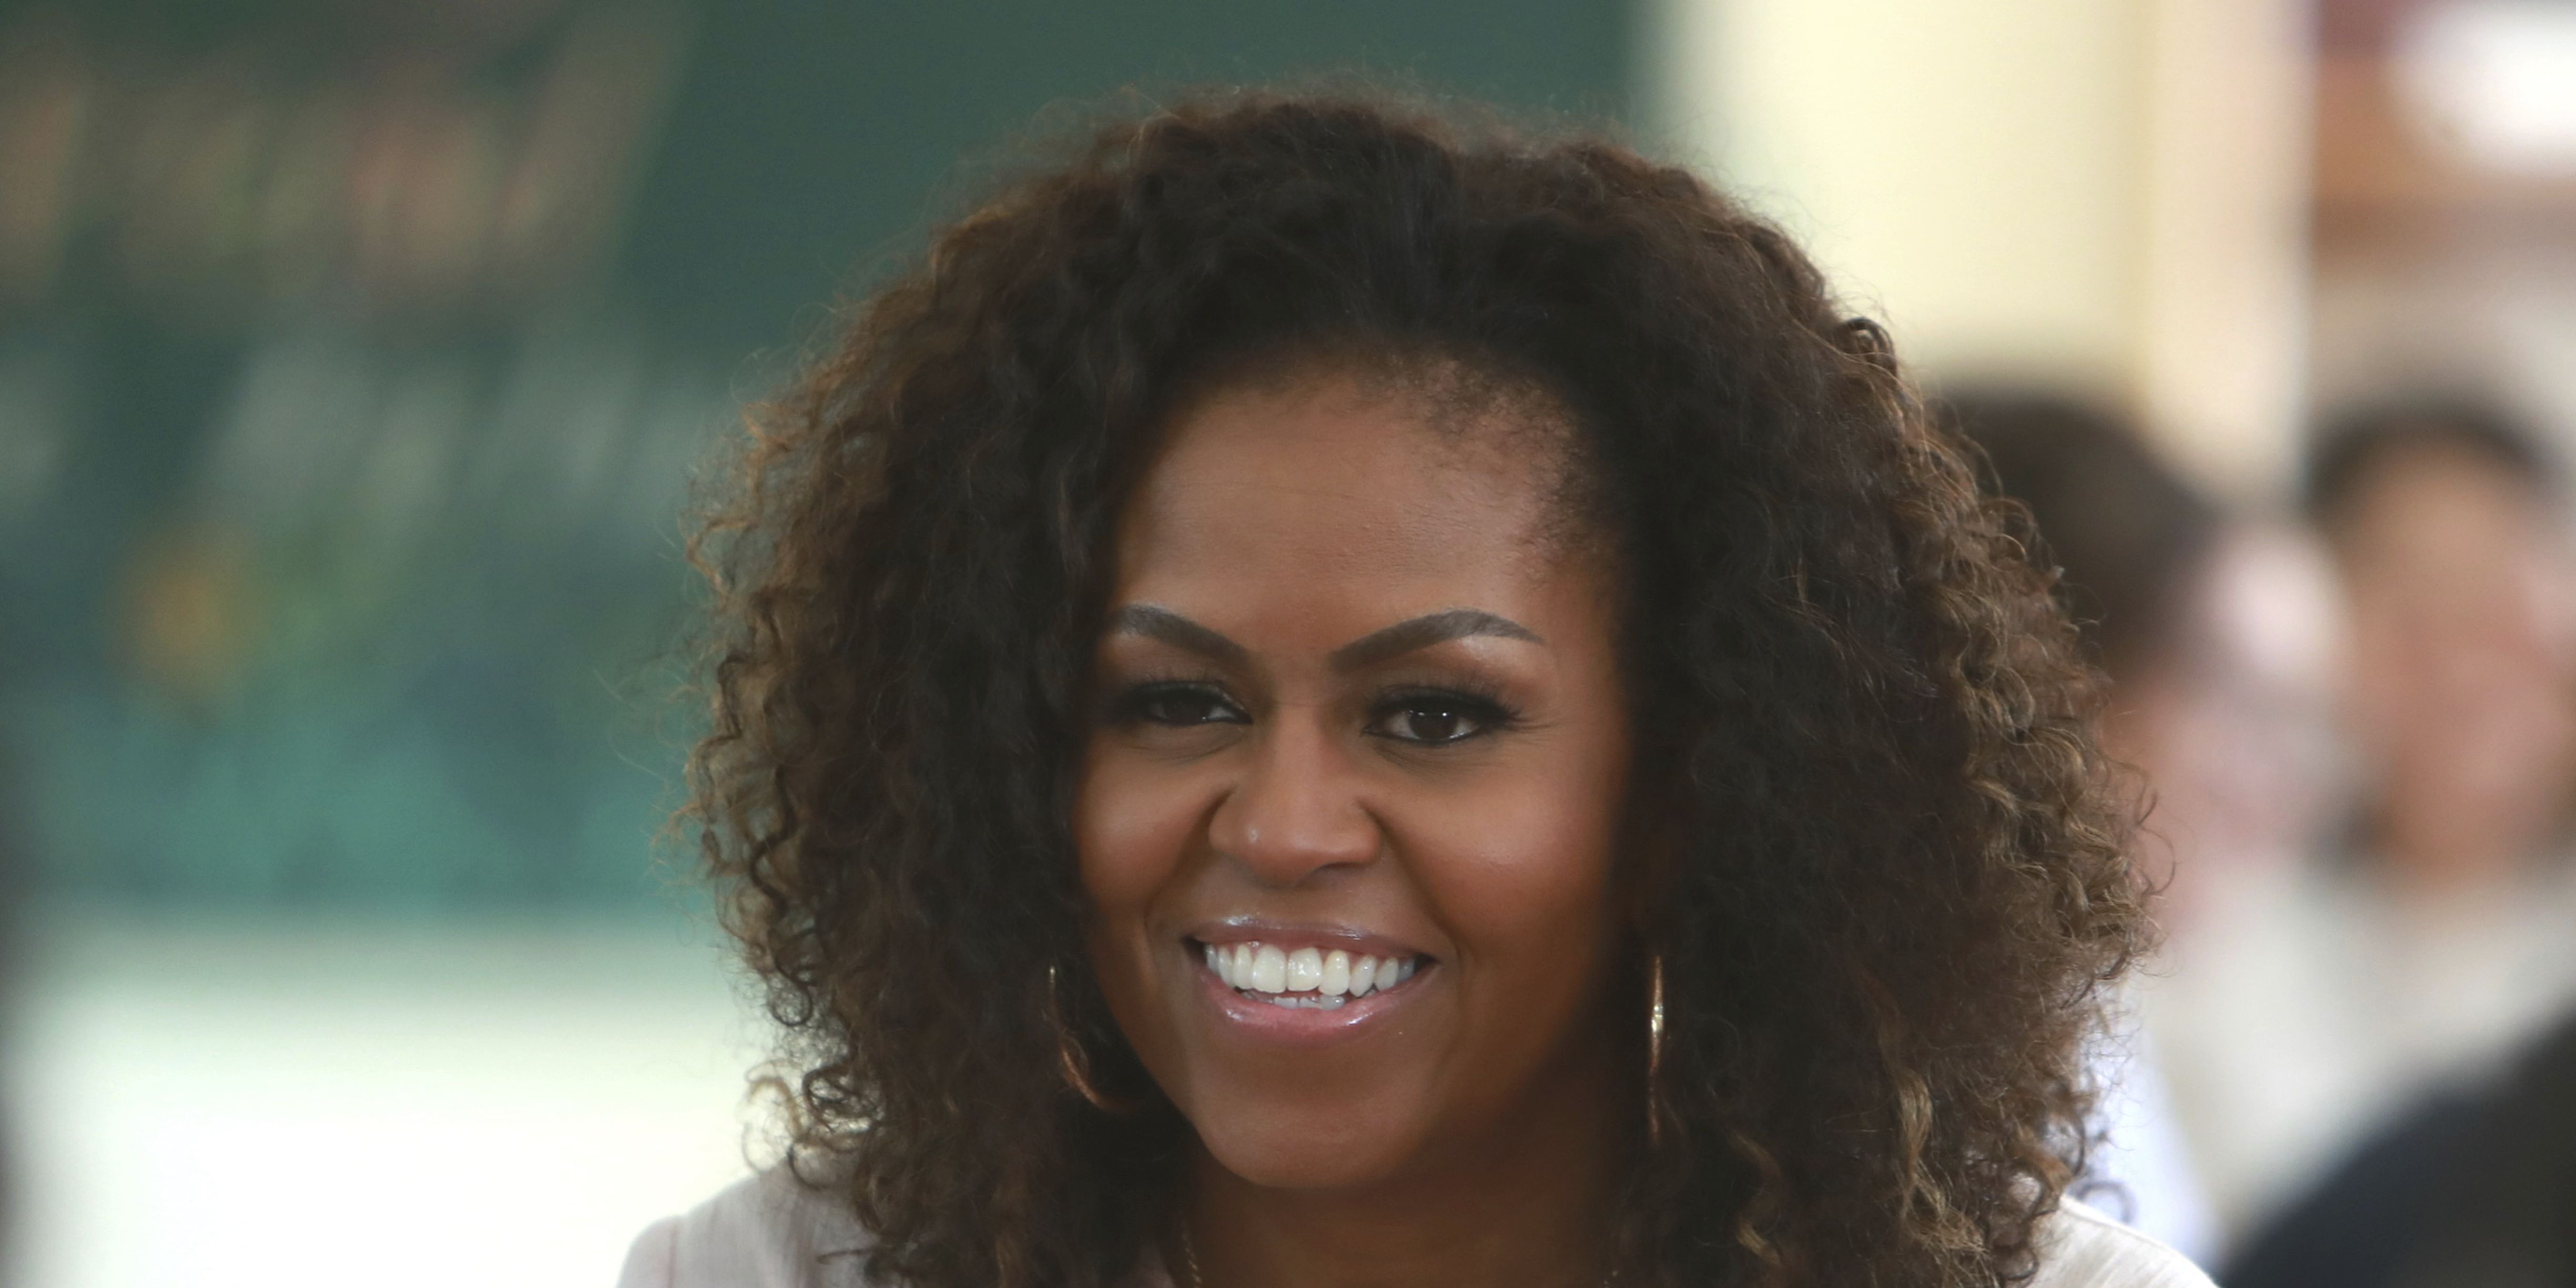 Michelle Obama will have second California school named after her